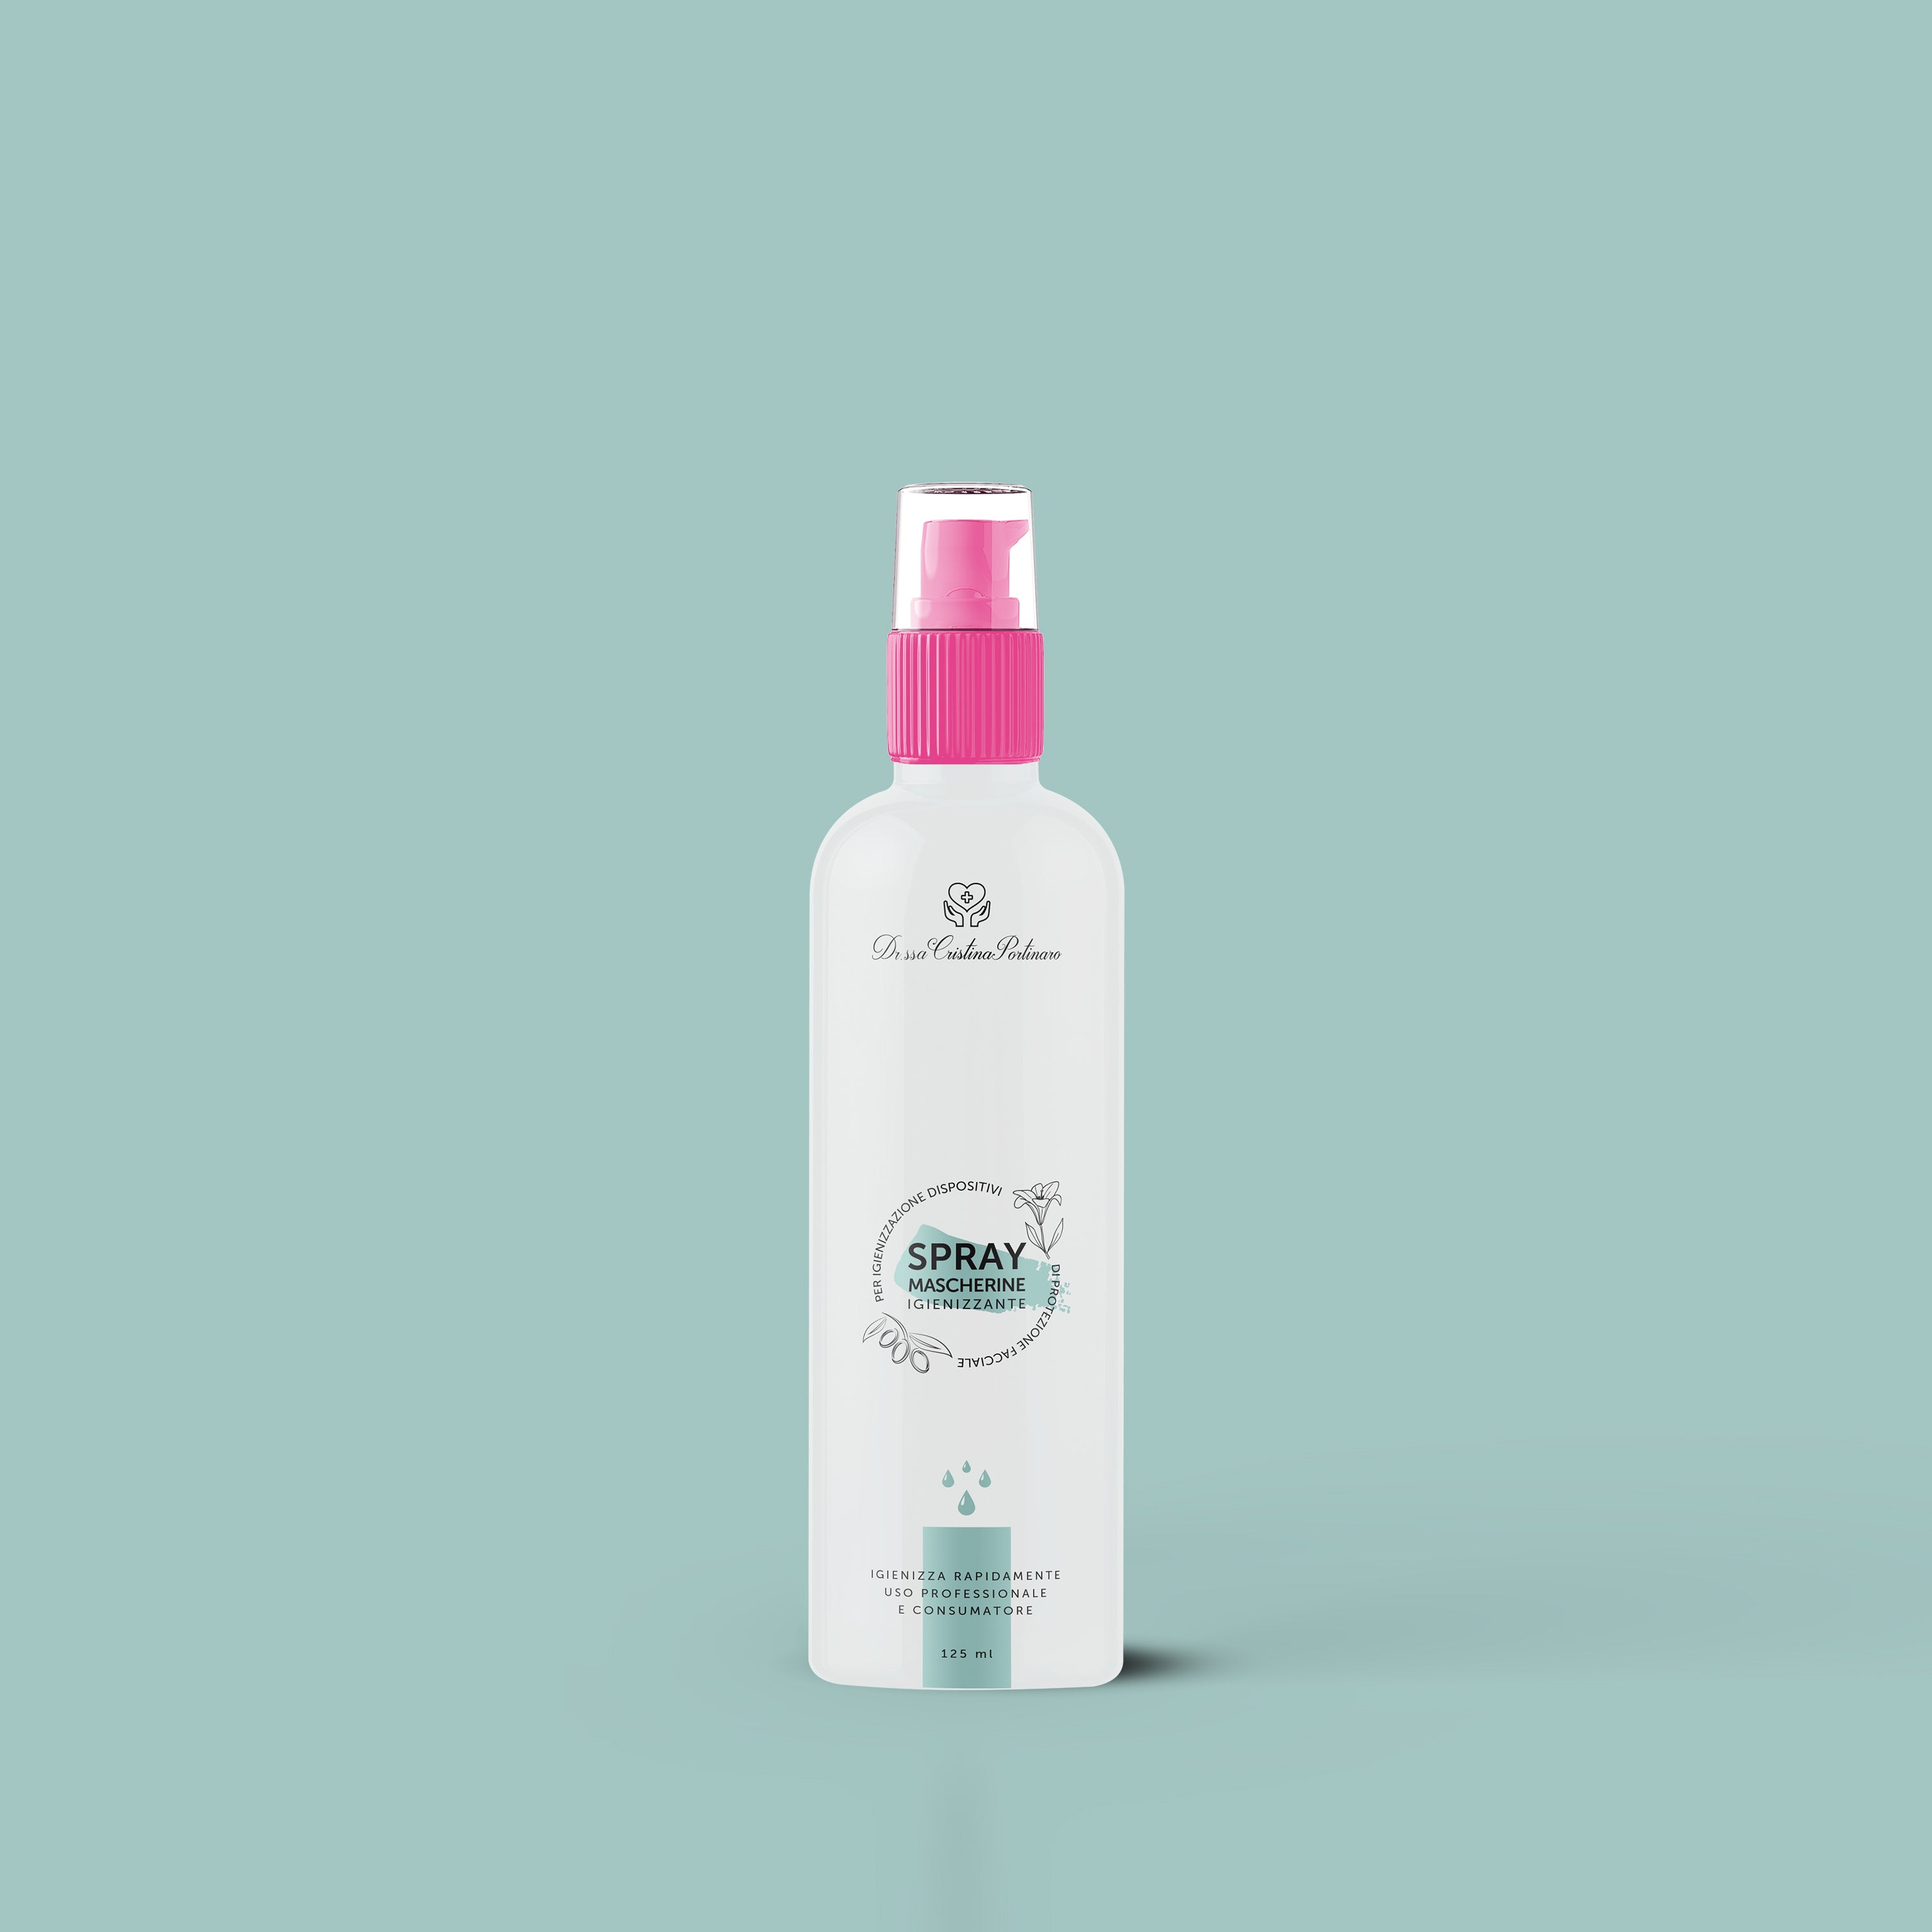 Spray mascherine igienizzante 125 ml